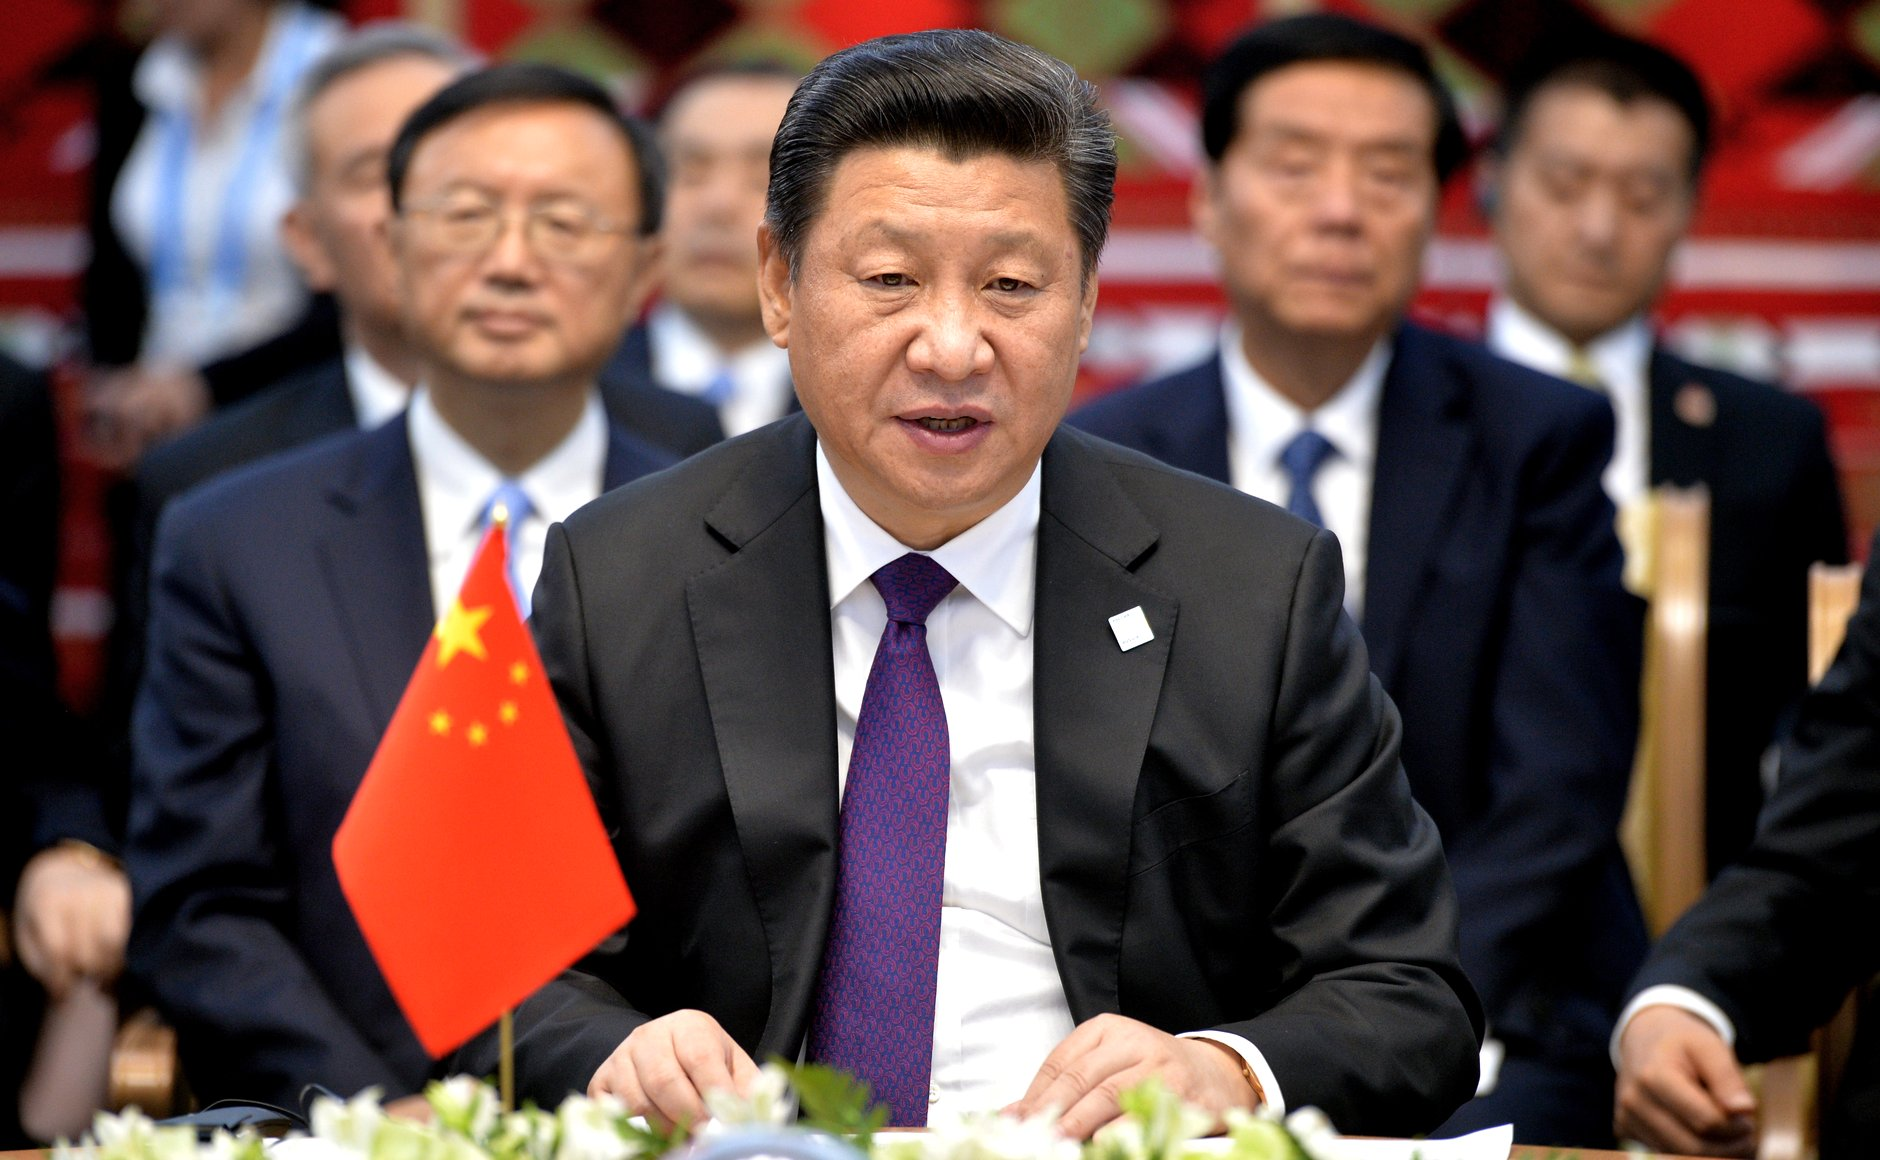 851px version of Xi-Jinping-BRICS-2015.jpg